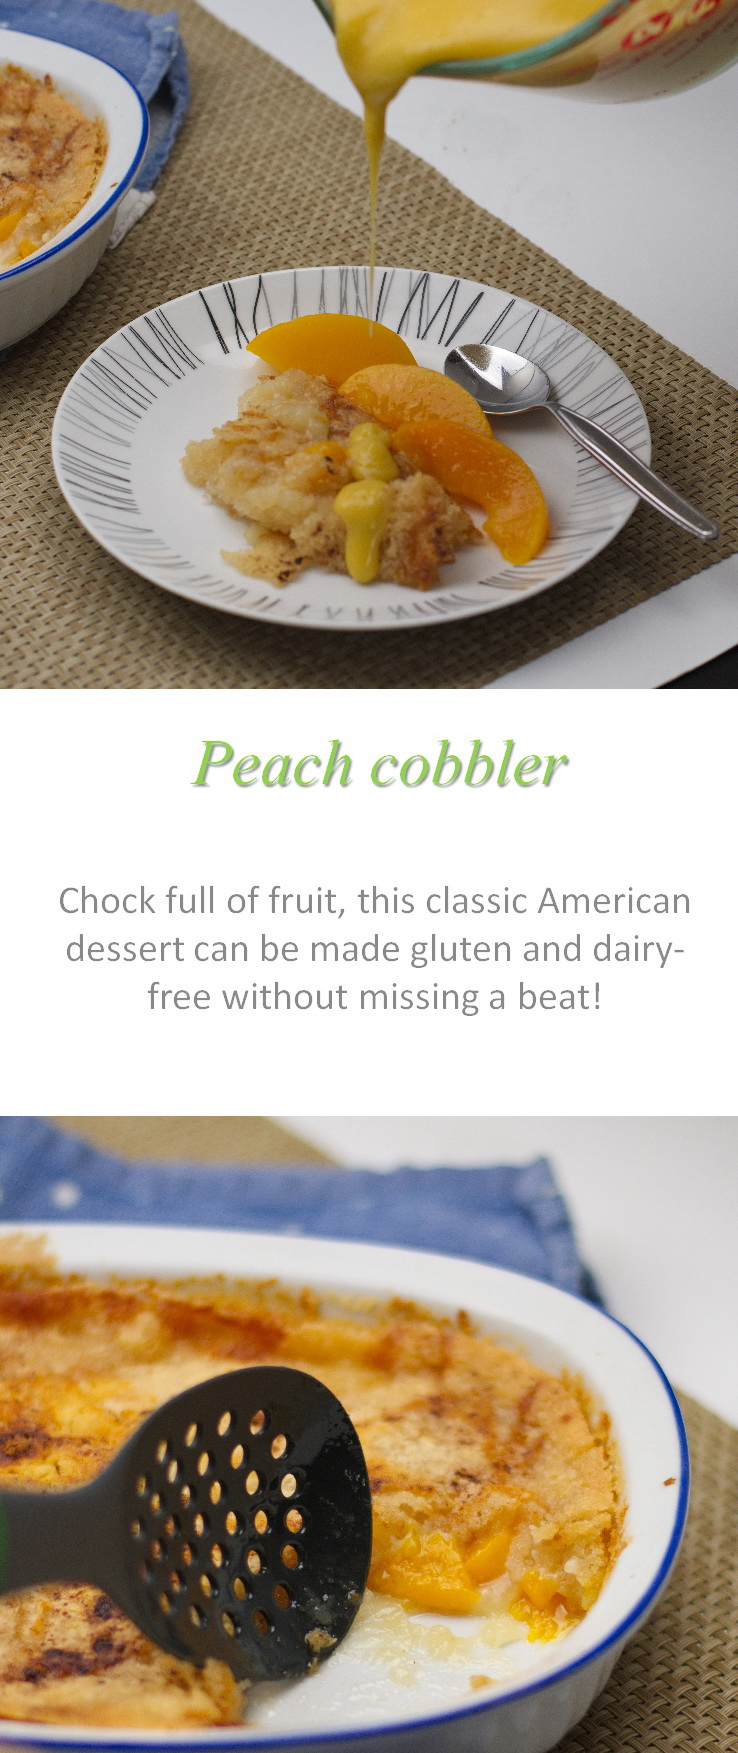 This peach cobbler is a great way to use up a whole heap of peaches - with lots of peeled and cut peaches required, but really easy to make. #peachcobbler #cookathome #glutenfree #dairyfree